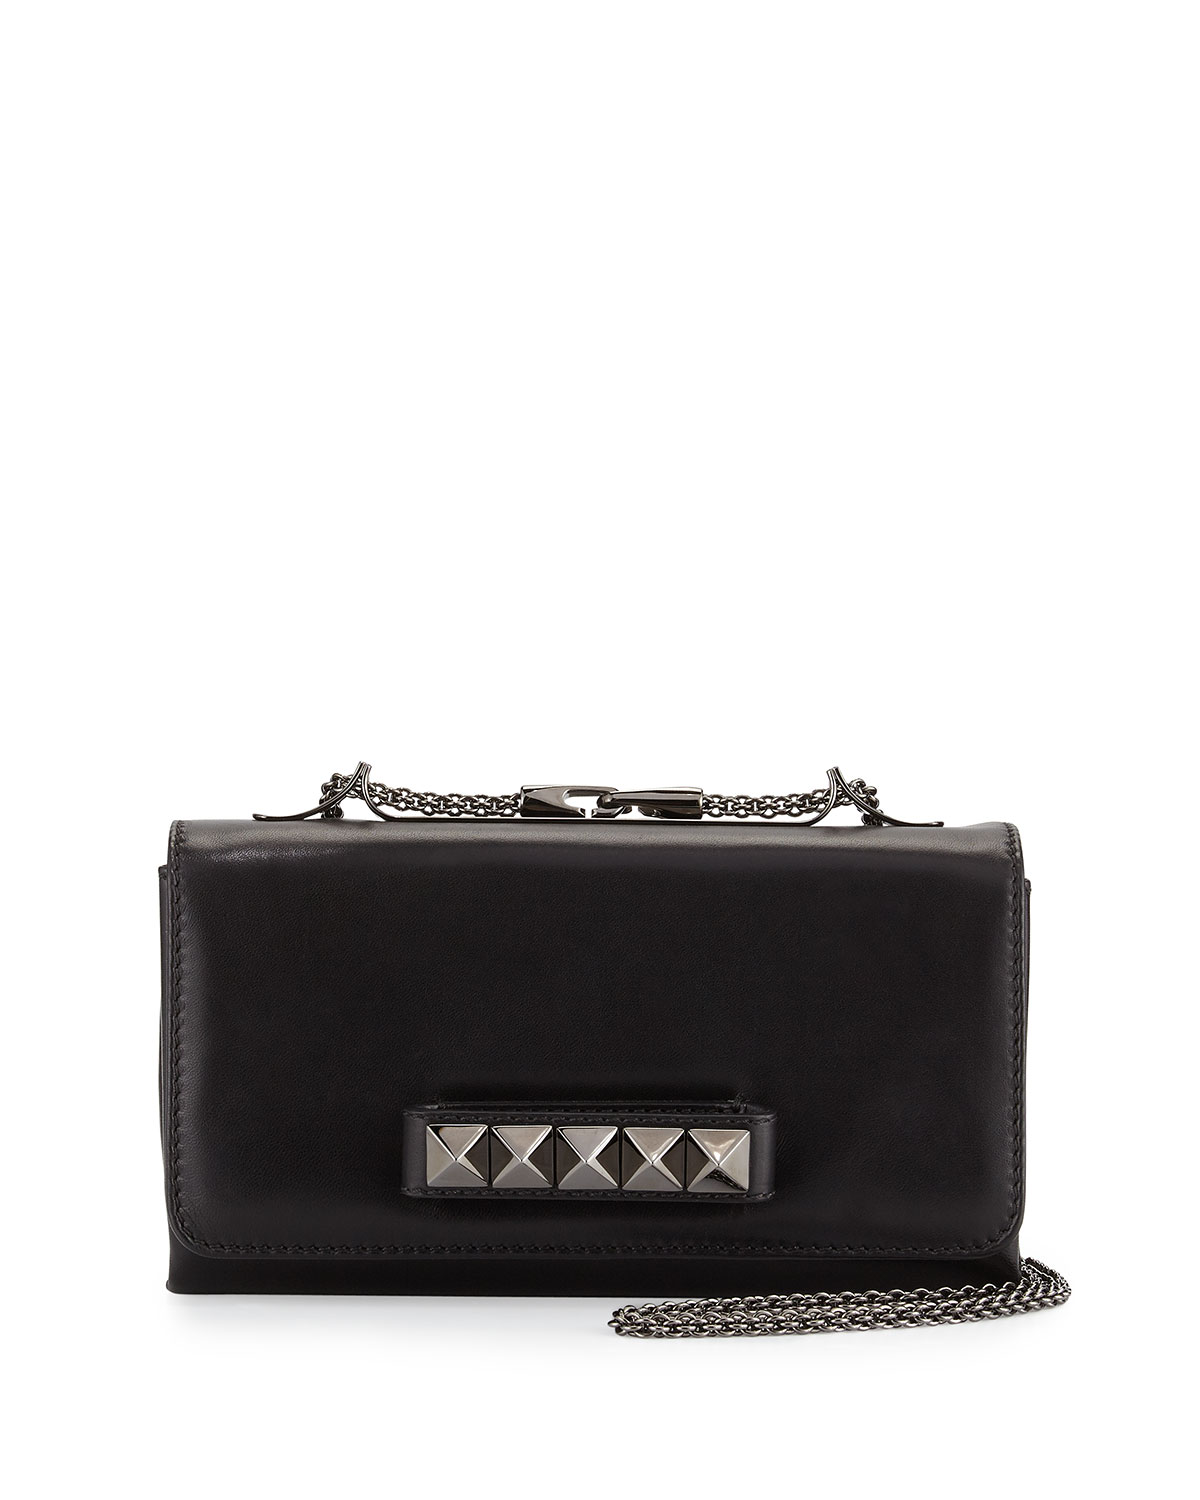 Red Valentino Va Va Voom Flap Shoulder Bag, Noir Black